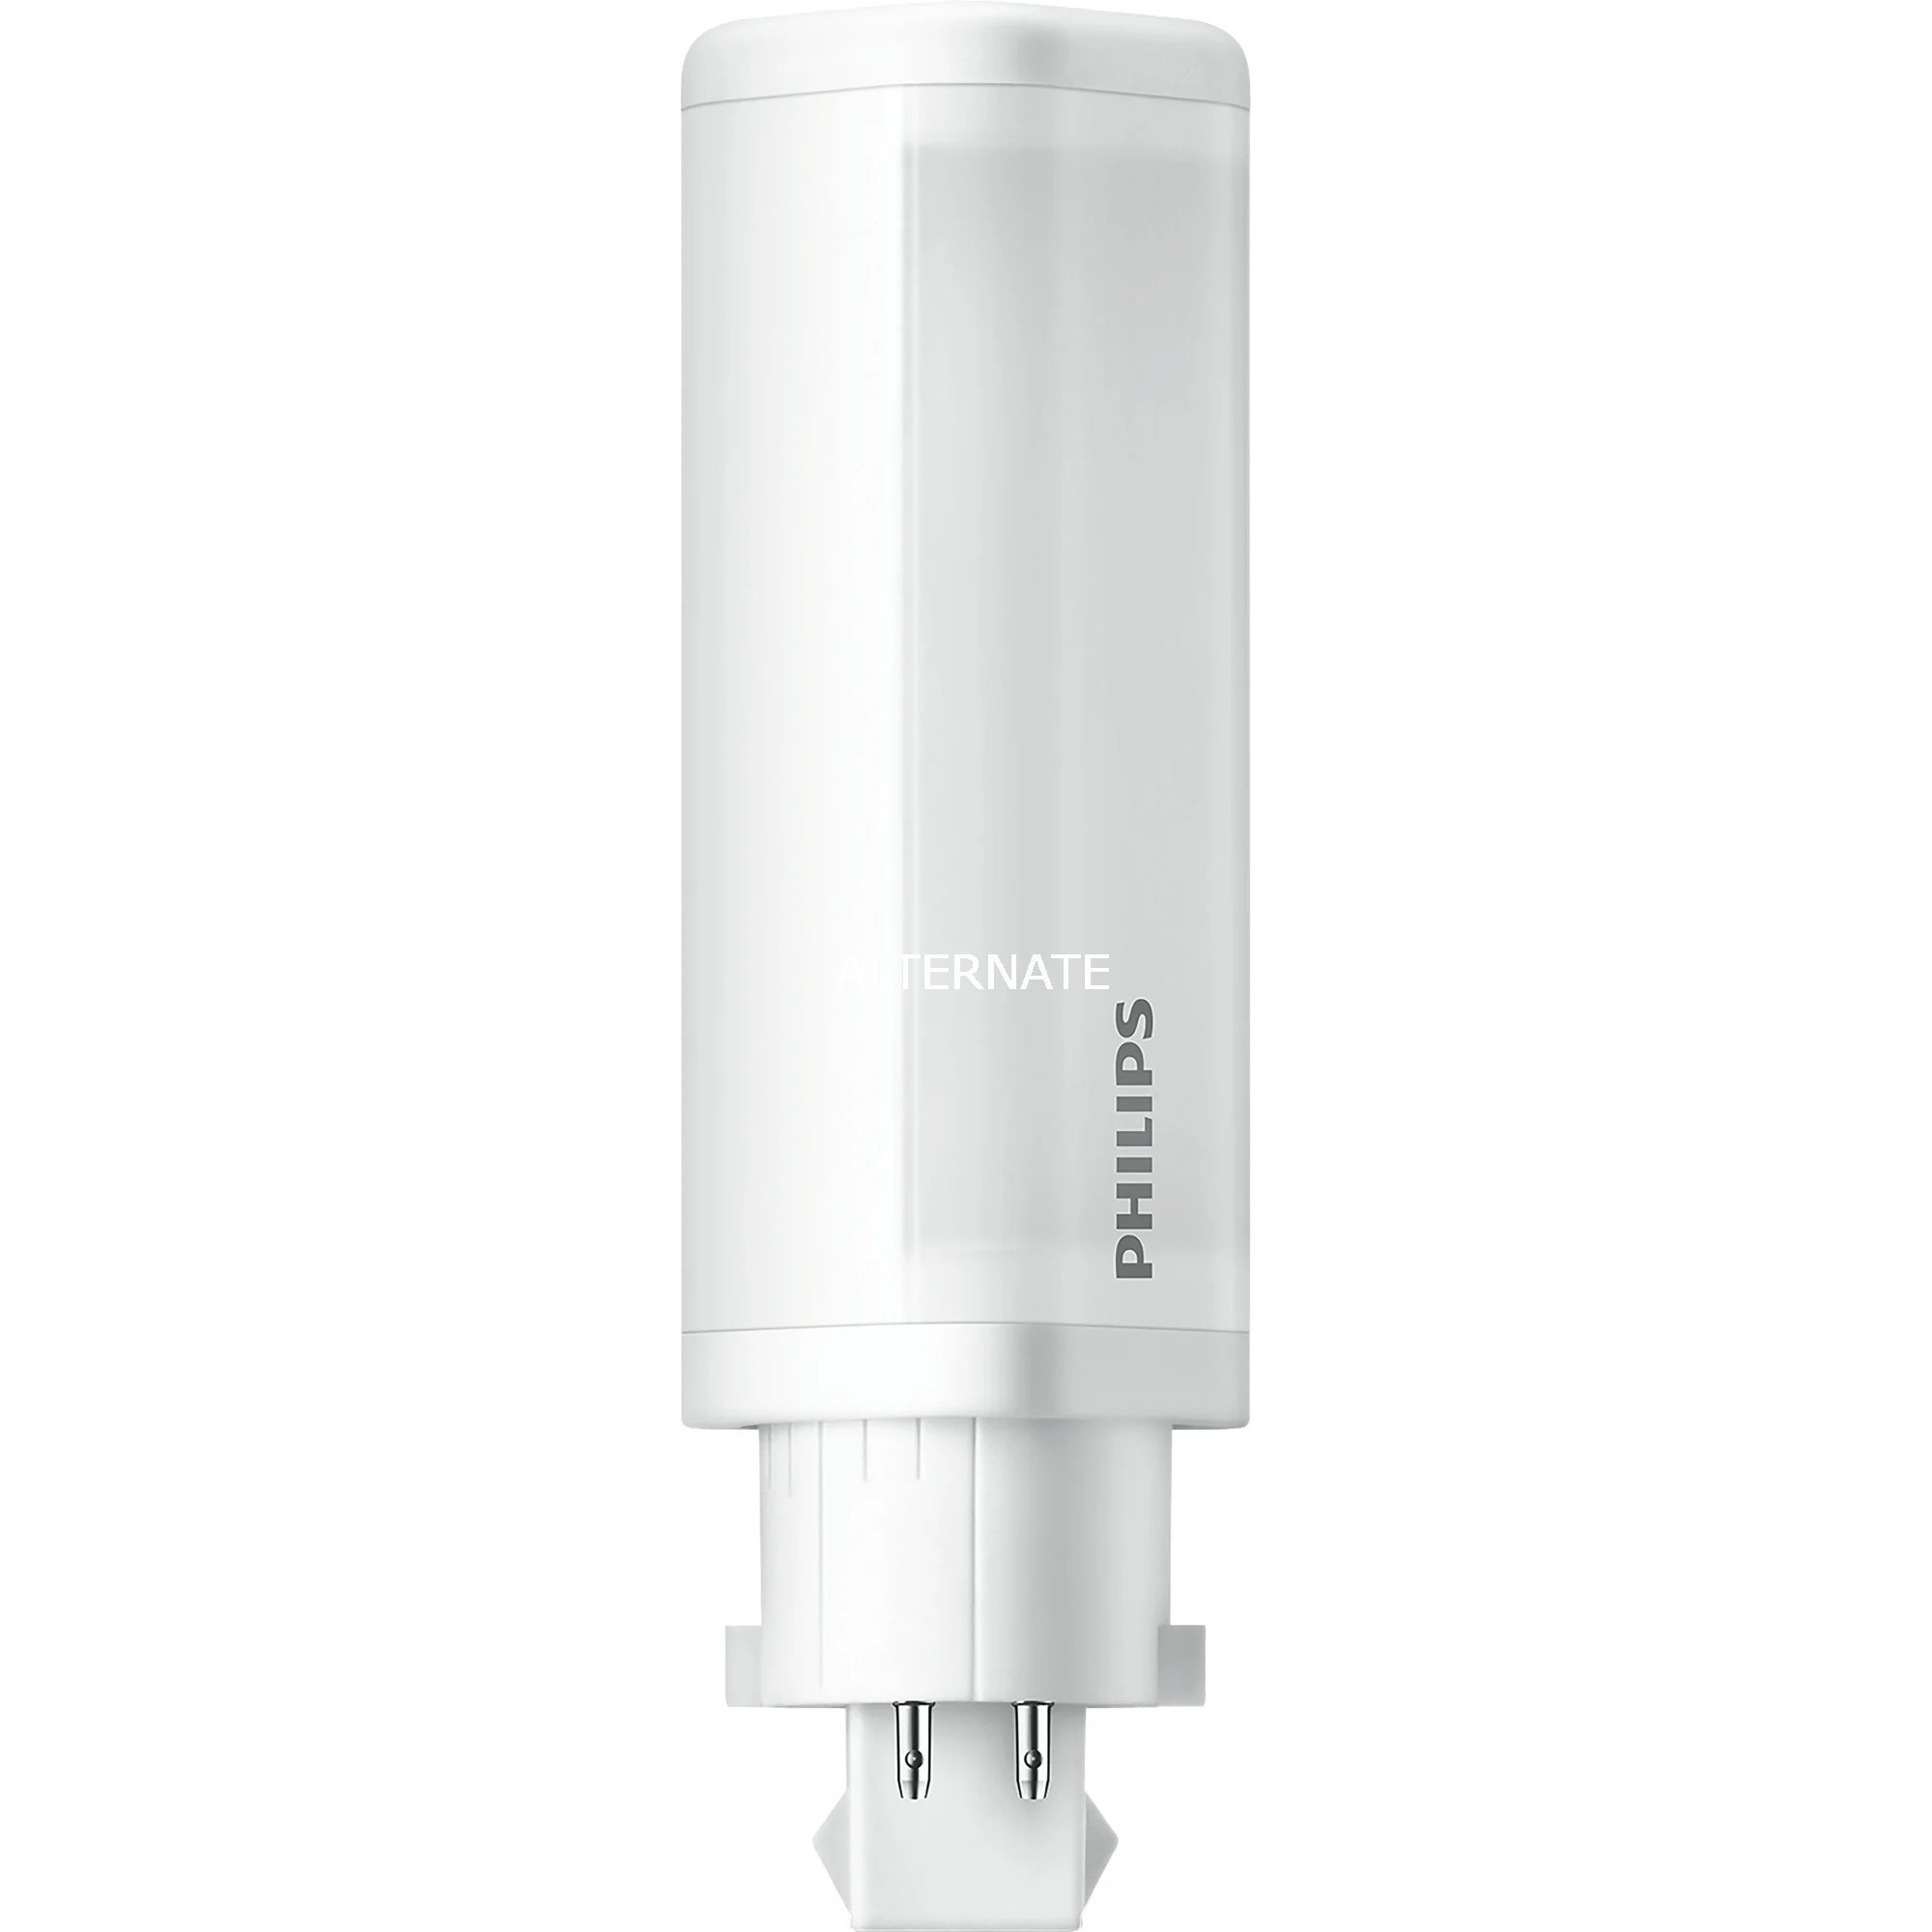 hight resolution of philips corepro led plc 4 5w 840 4p g24q 1 4 5w g24q 1 a blanco fr o l mpara led blanco fr o blanco a 260 ma 6 kwh 10 cm